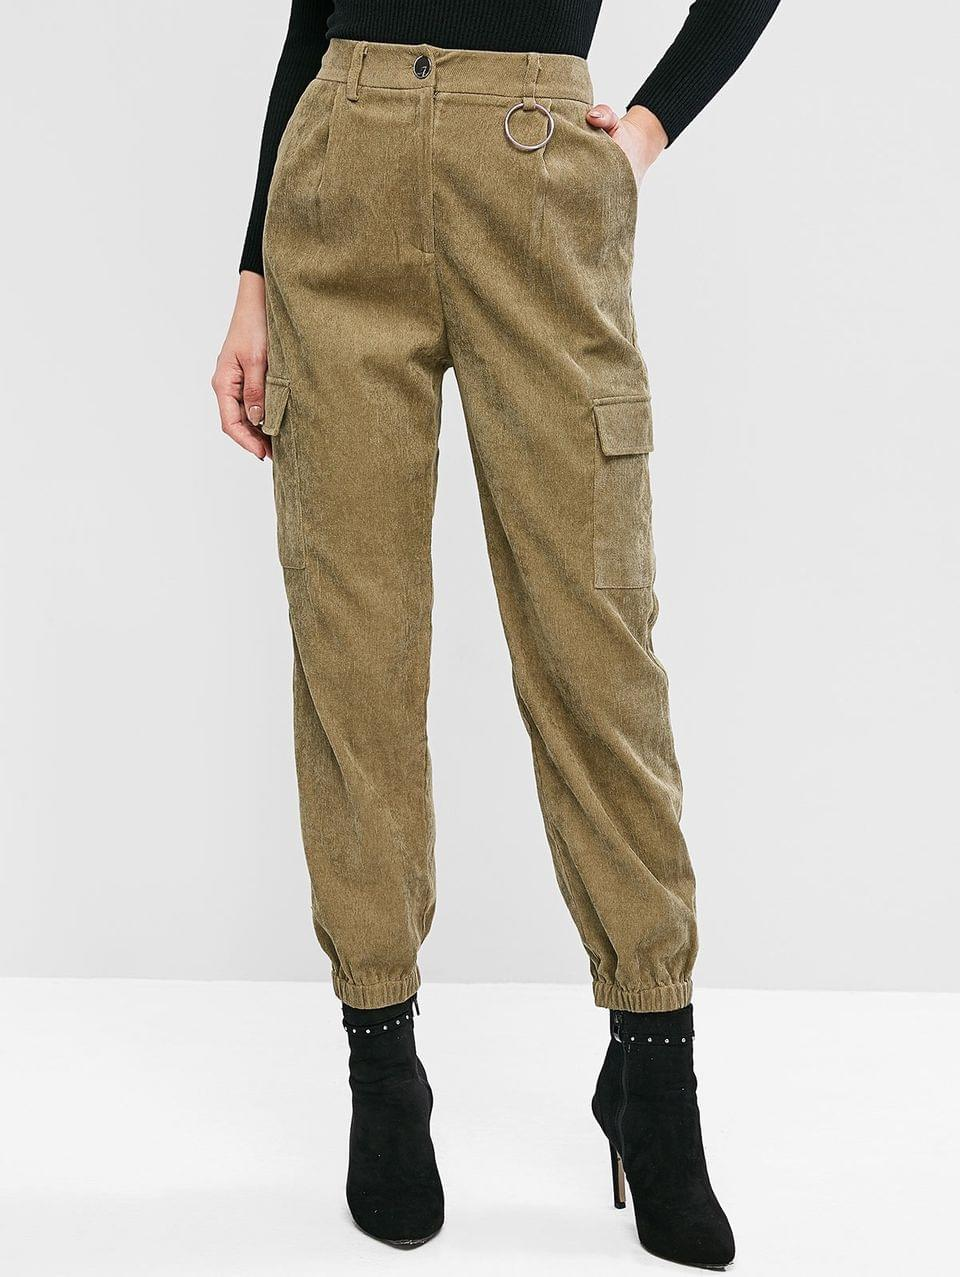 Women's Corduroy Pocket Zipper Fly Cargo Jogger Pants - Army Green L